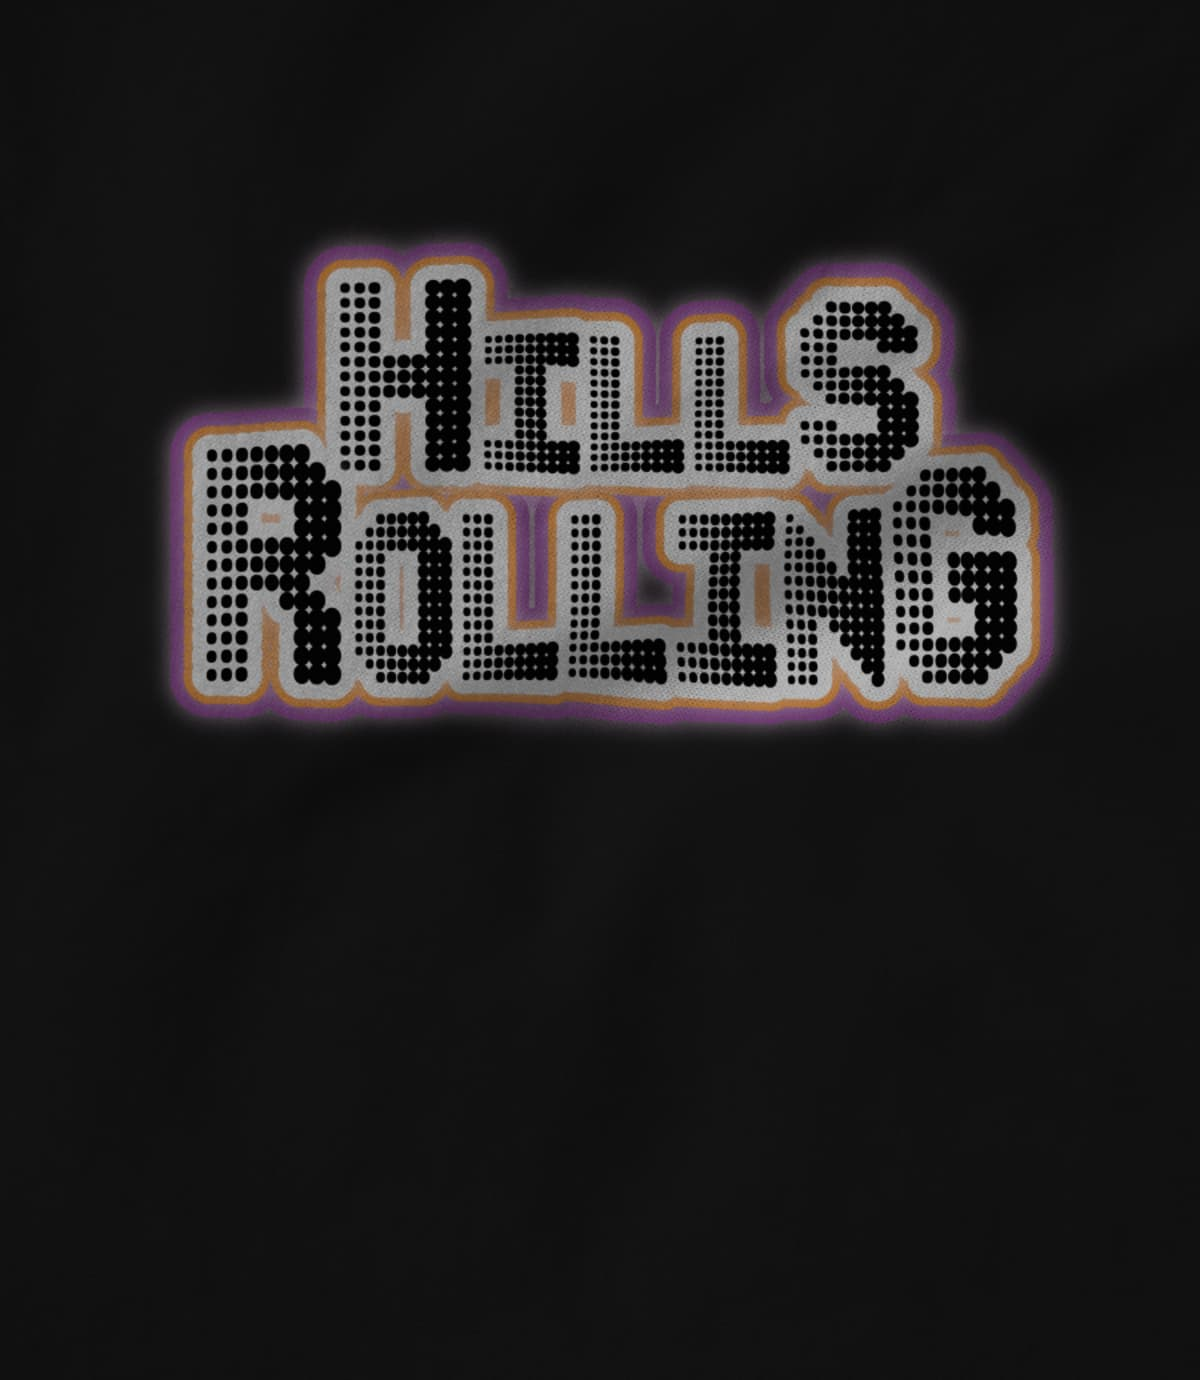 Hills rolling neon vibe design by trey mcgriff 1473476636